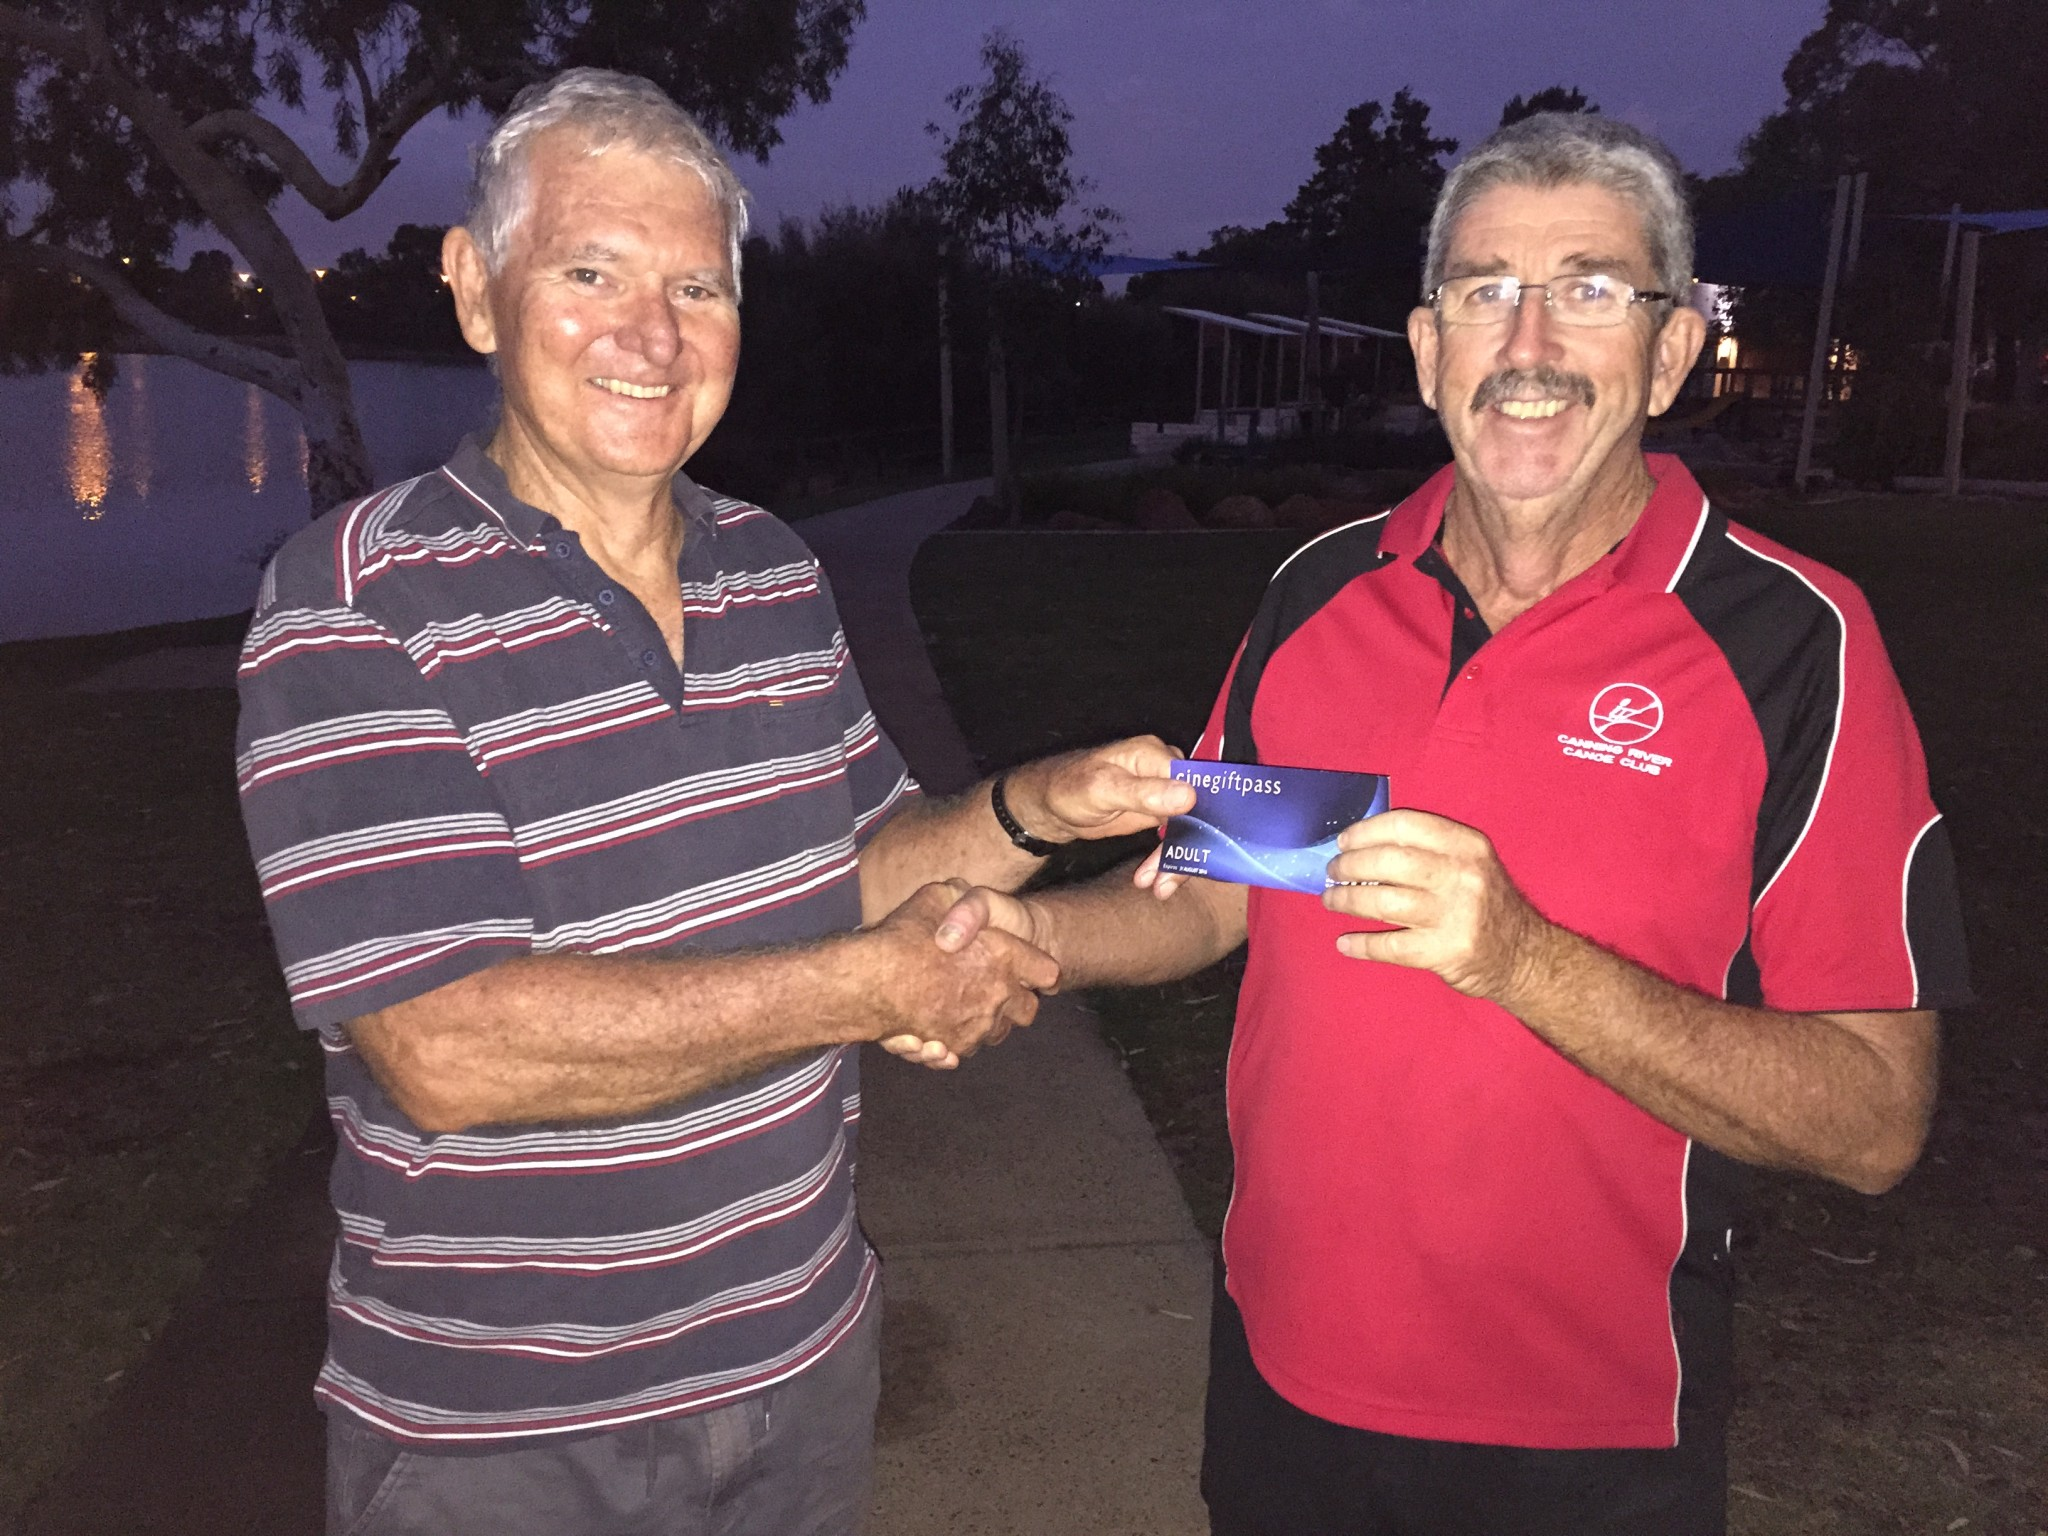 Tuesday 15th March 2016 : Club member Dave Griffiths presenting tonight's winner Jerry Alderson with a movie voucher